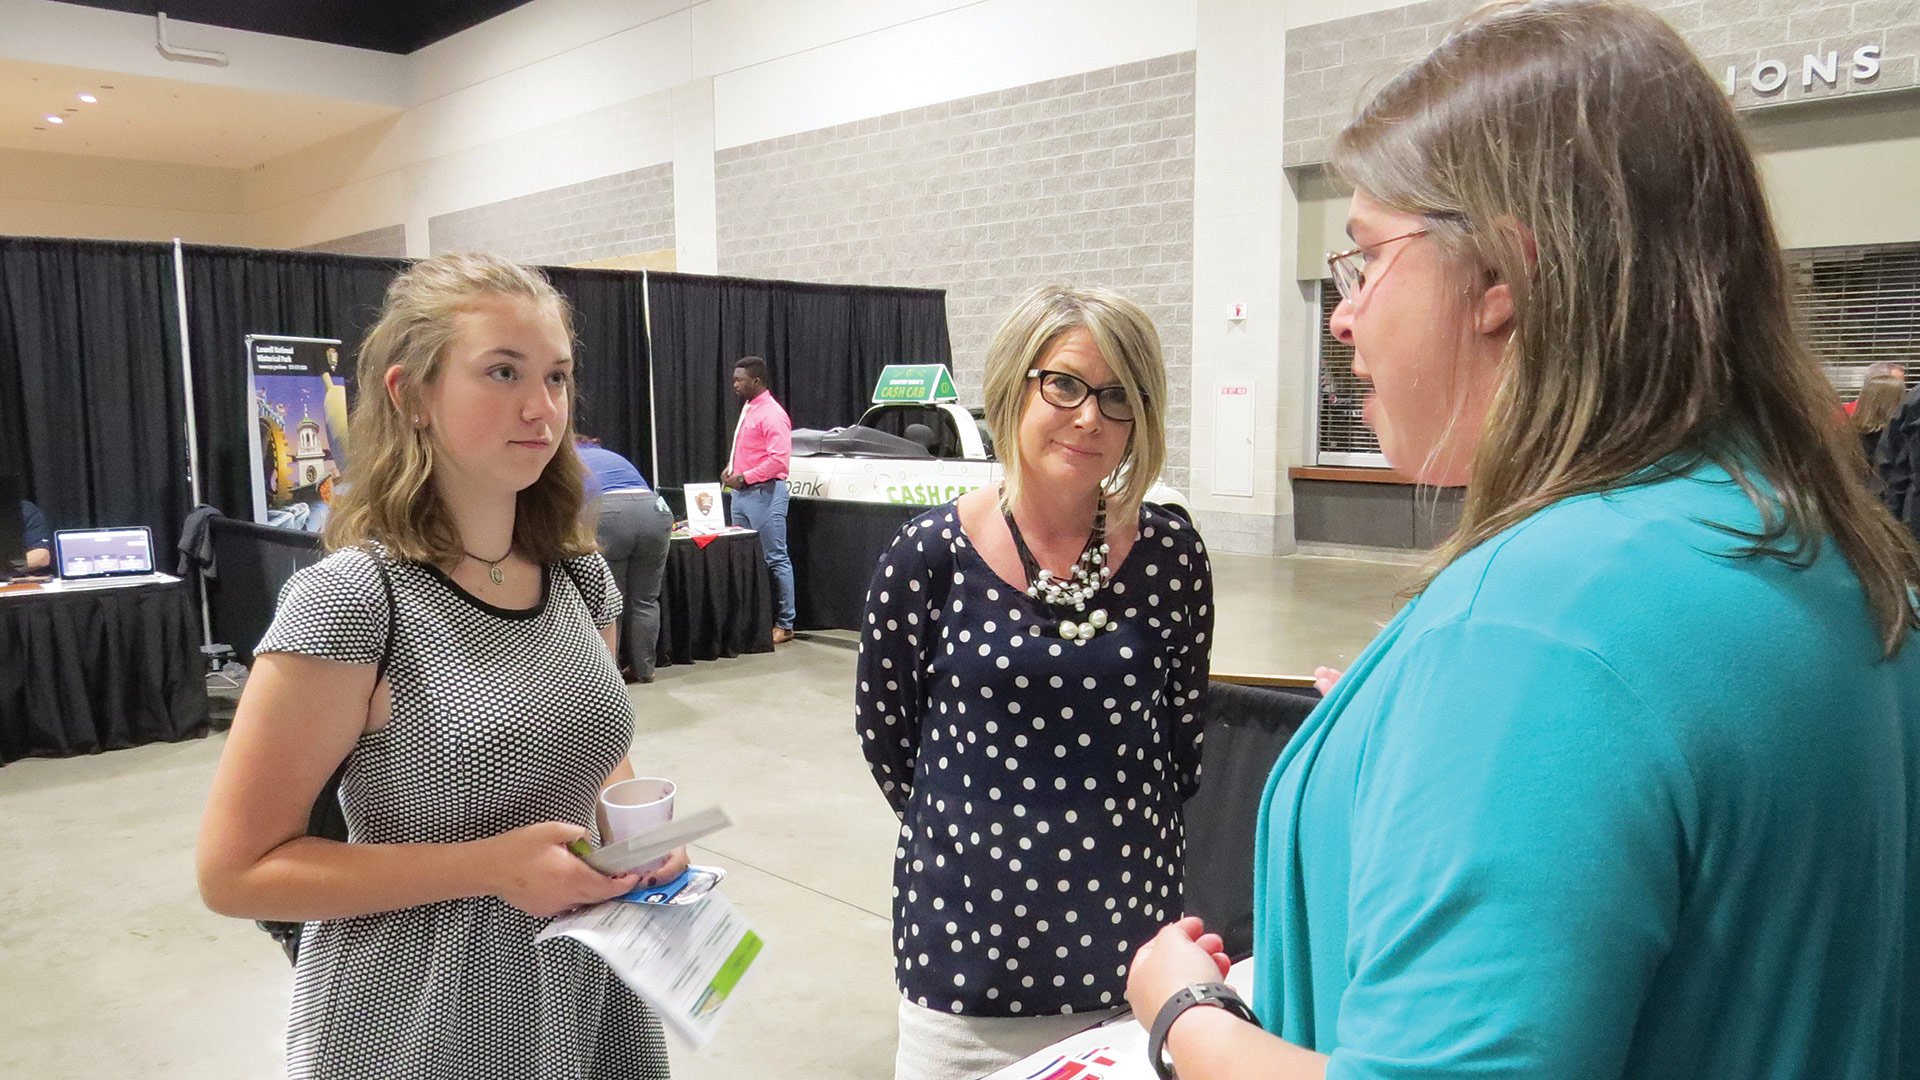 Kristin Carlson, president of Peerless Precision, talks with a student about opportunities in manufacturing while Dawn Creighton, Western Mass. Director for AIM, listens in